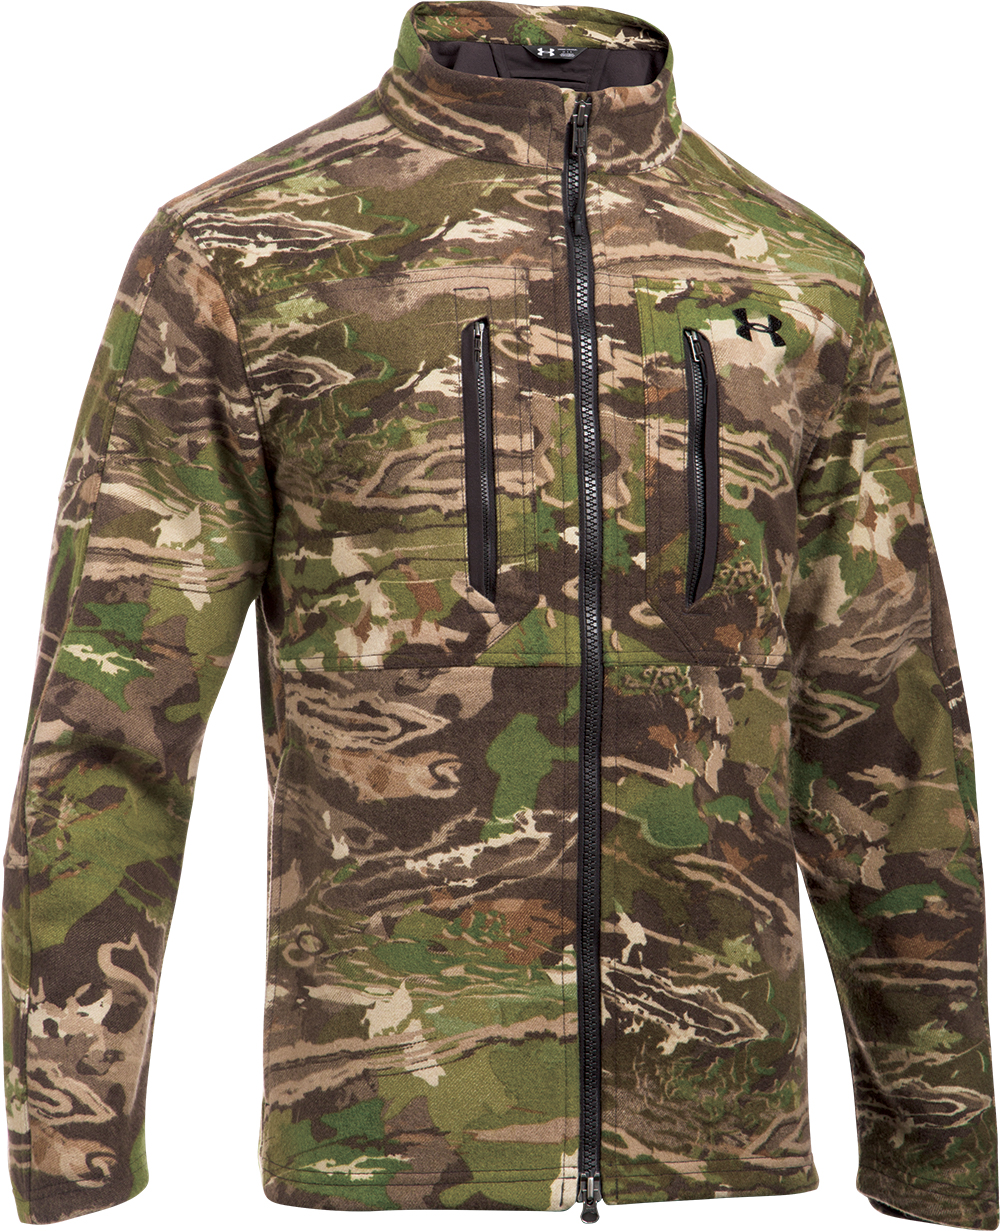 5b5f081cea9ab Best Hunt Wear for 2017: Outerwear | Grand View Outdoors